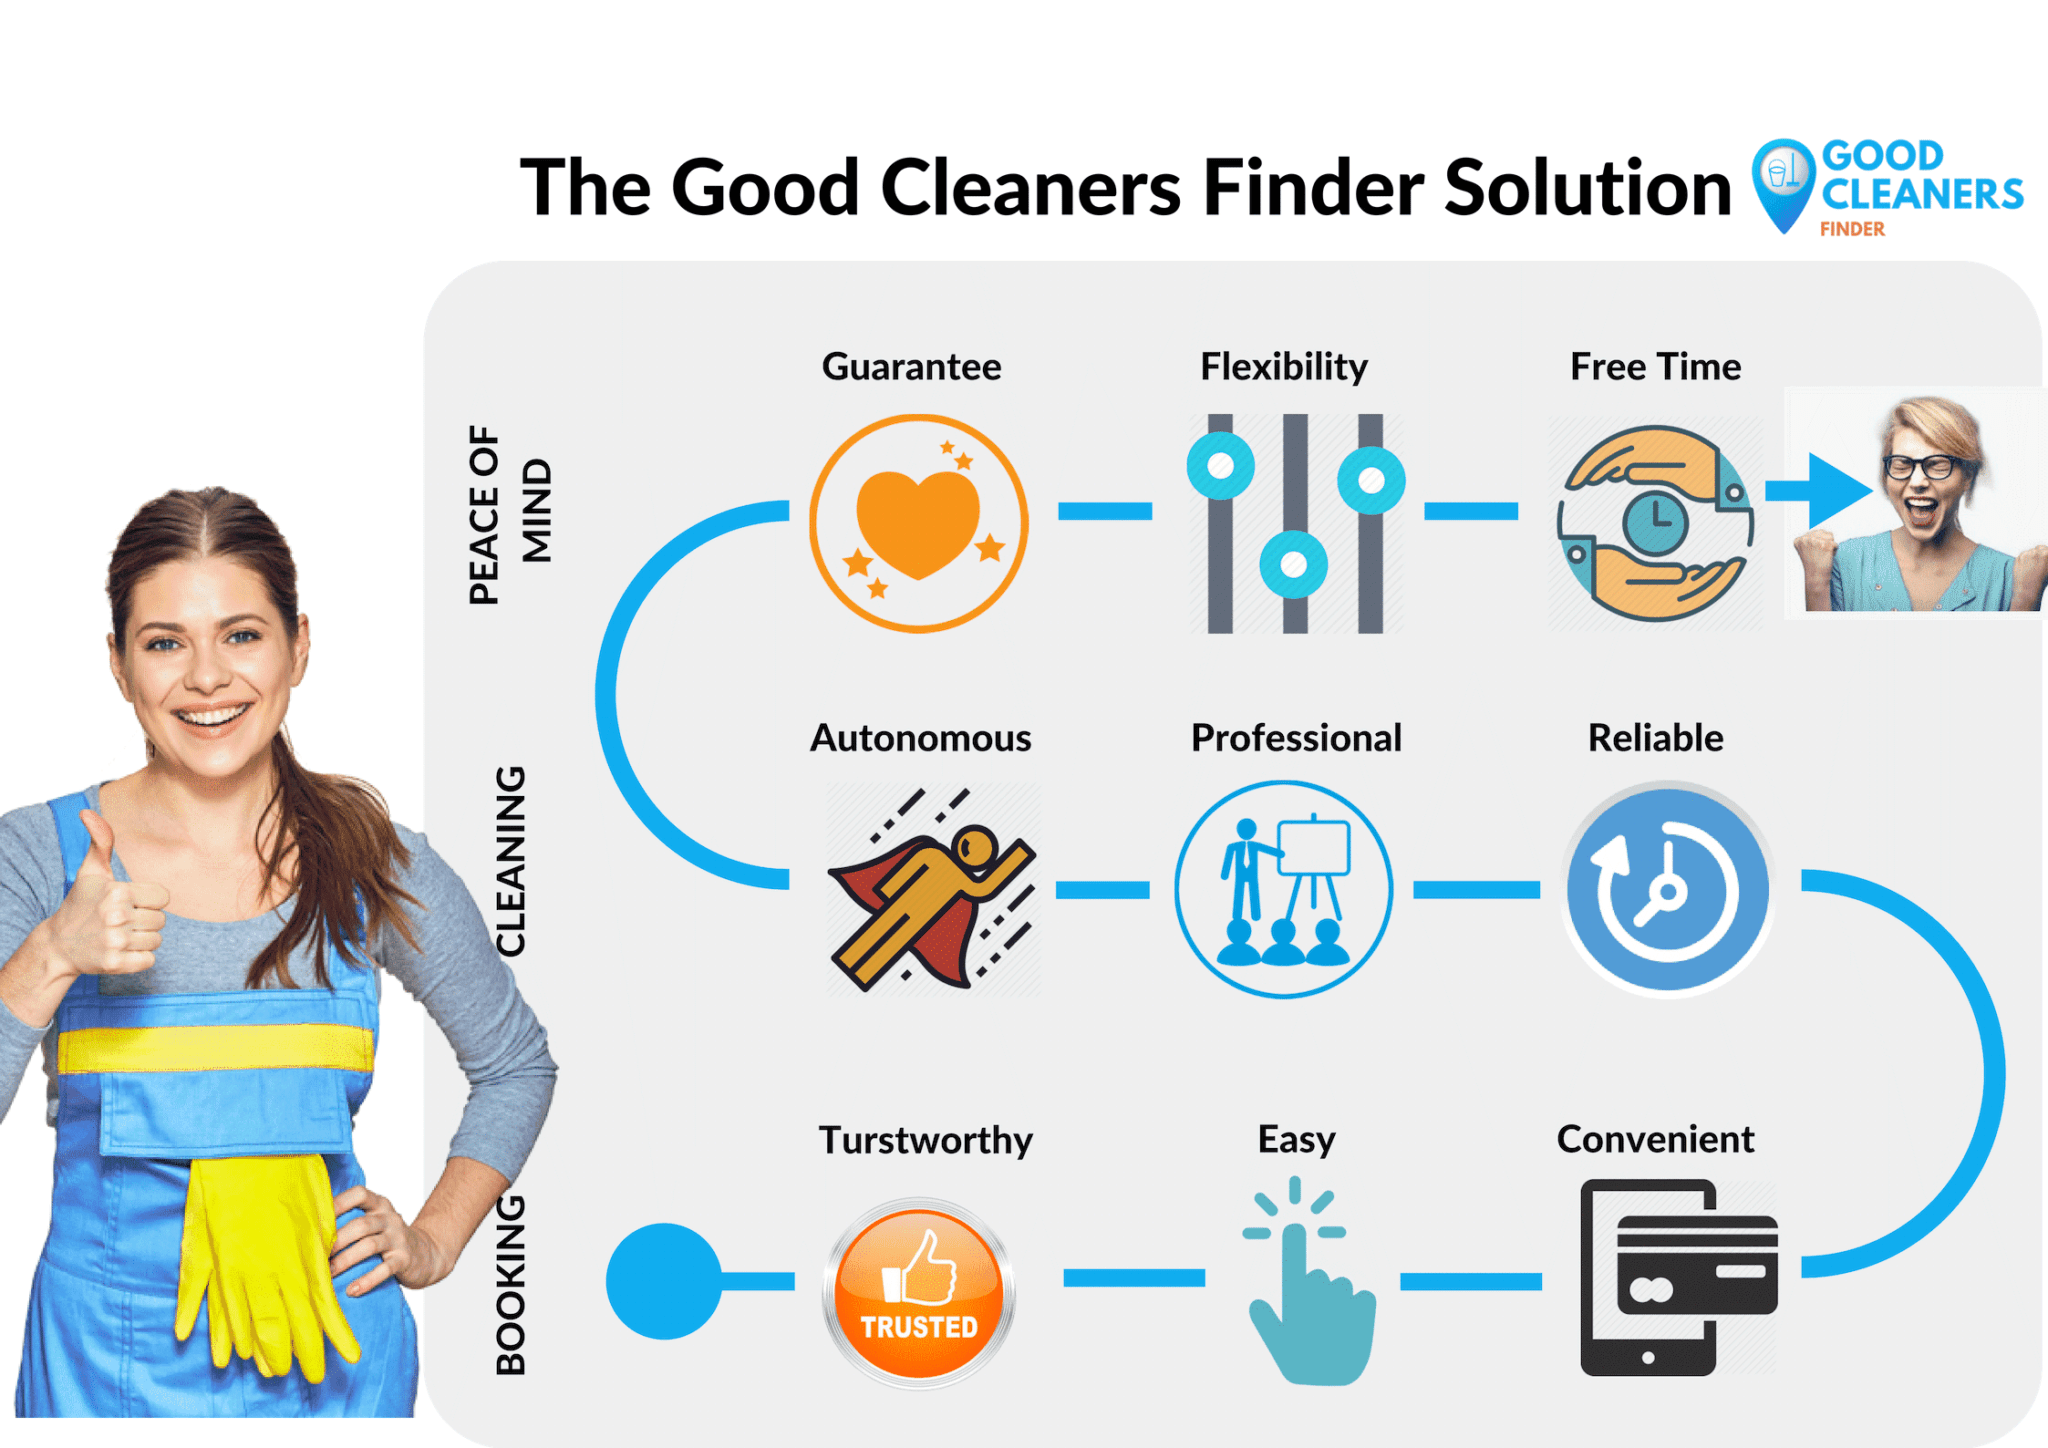 House Cleaning Services in Switzerland